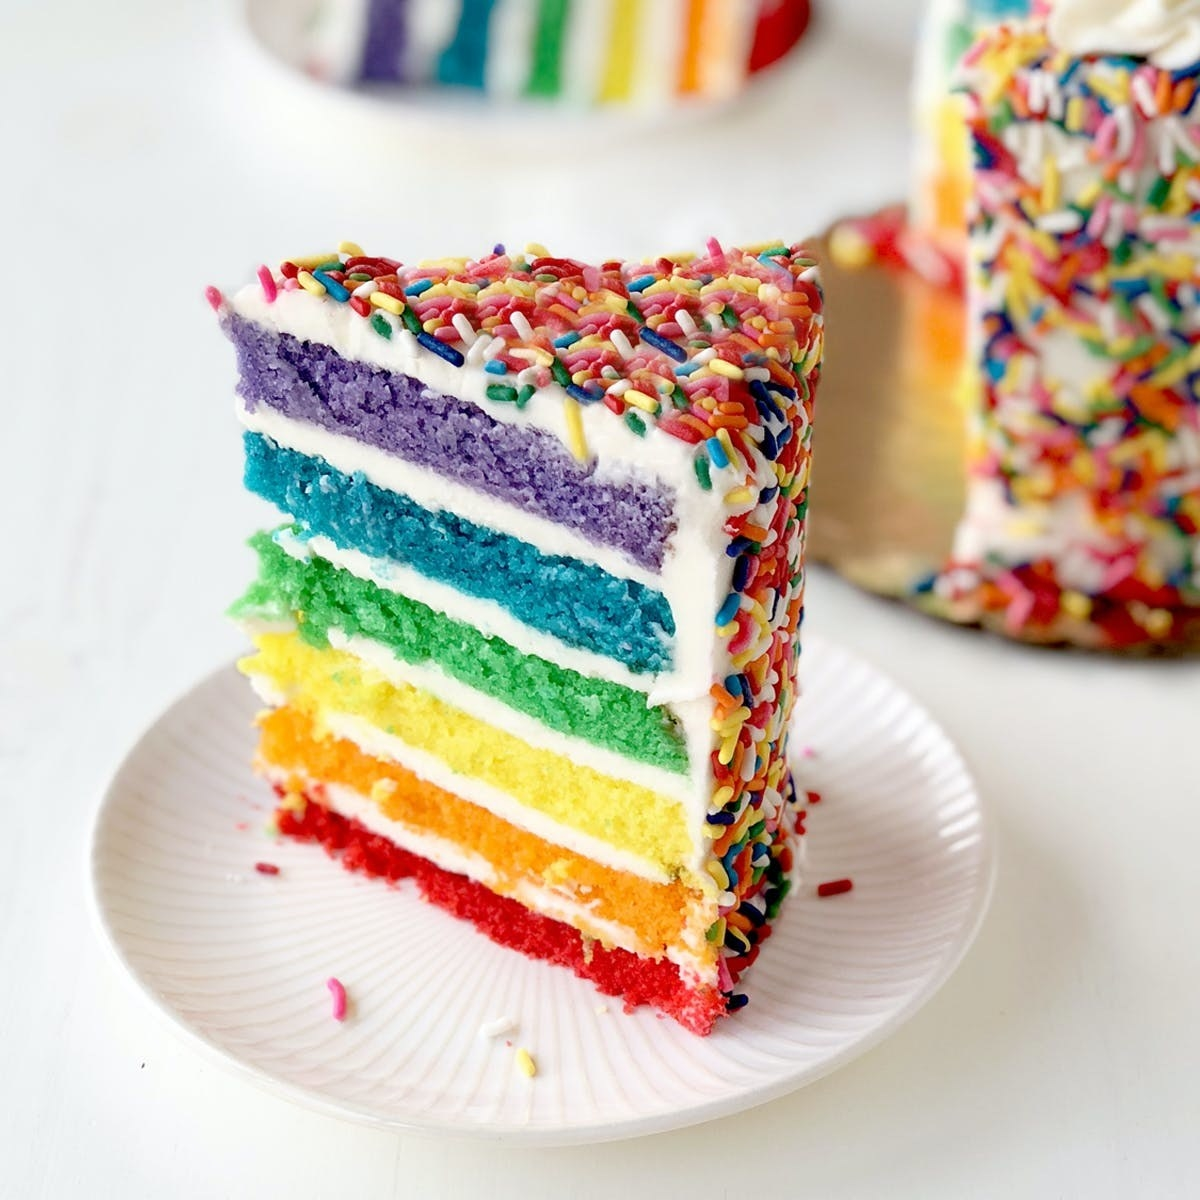 The cross section of the cake, which shows rainbow layers. The outside of the cake is covered with rainbow confetti